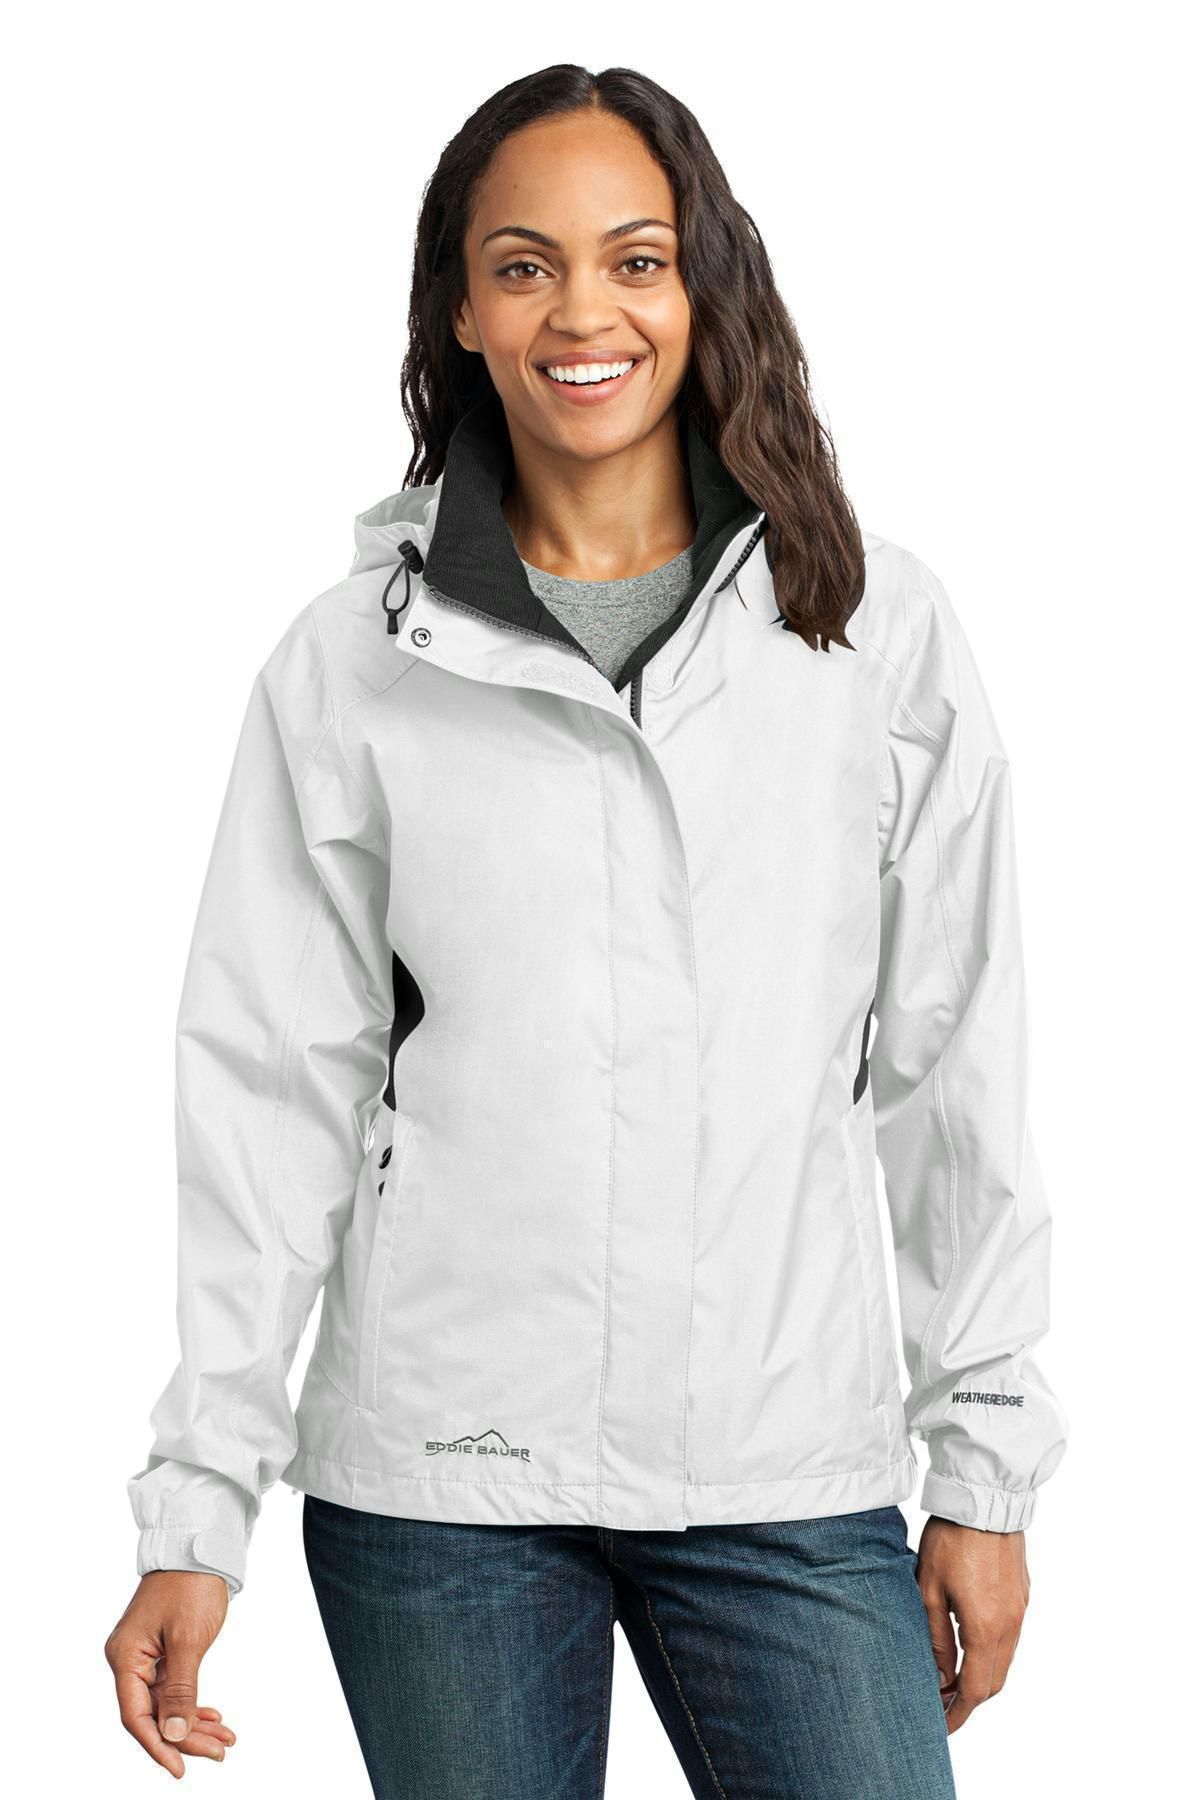 Eddie Bauer Ladies Rain Jacket. EB551 White/Grey Steel